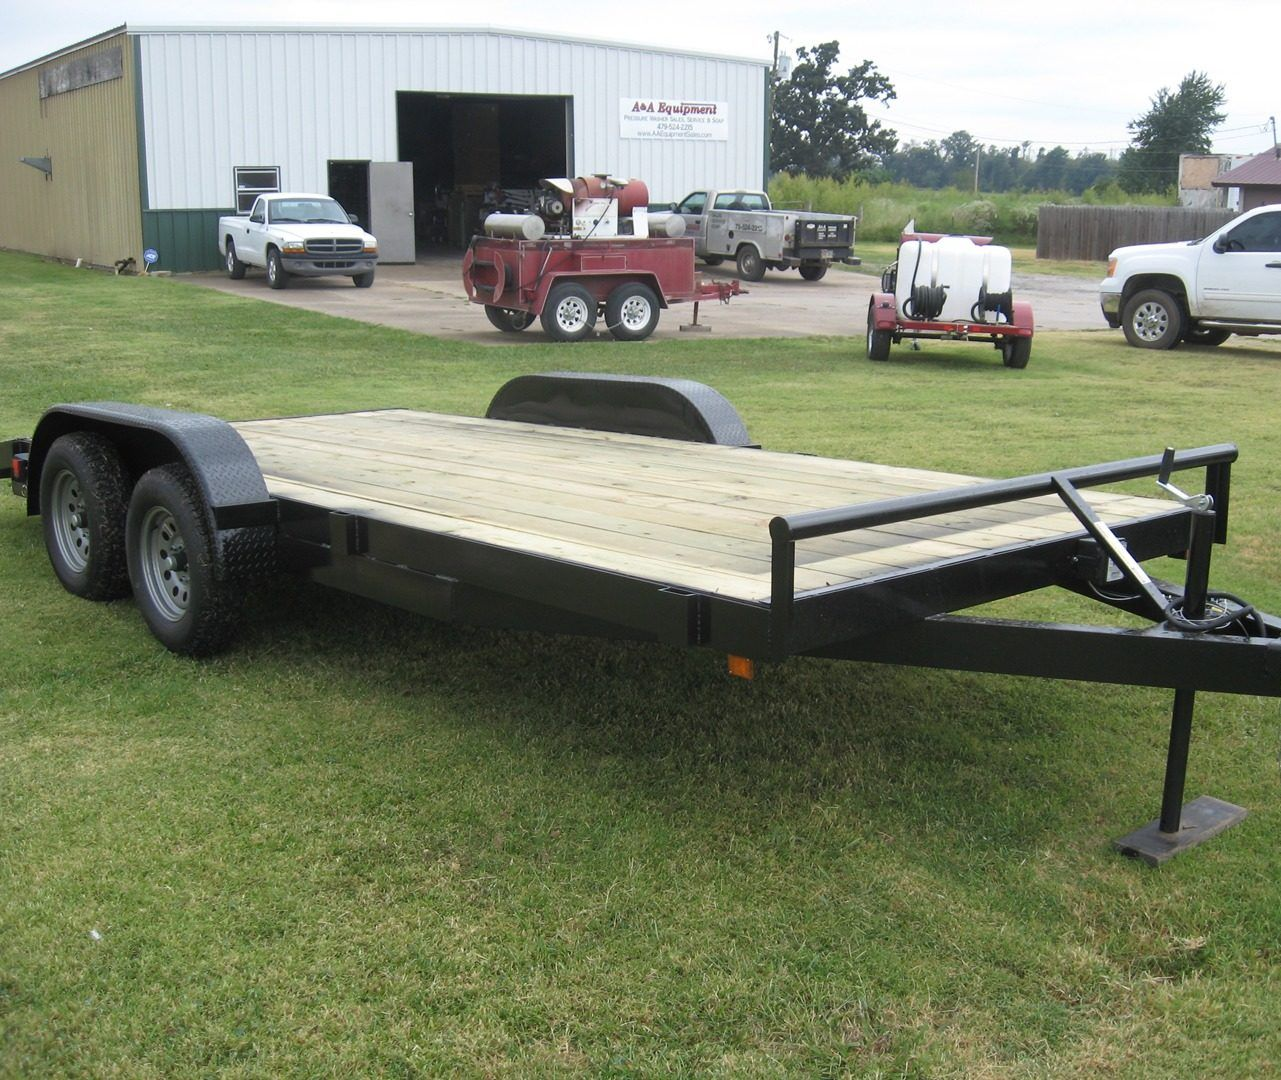 A&A Equipment trailer